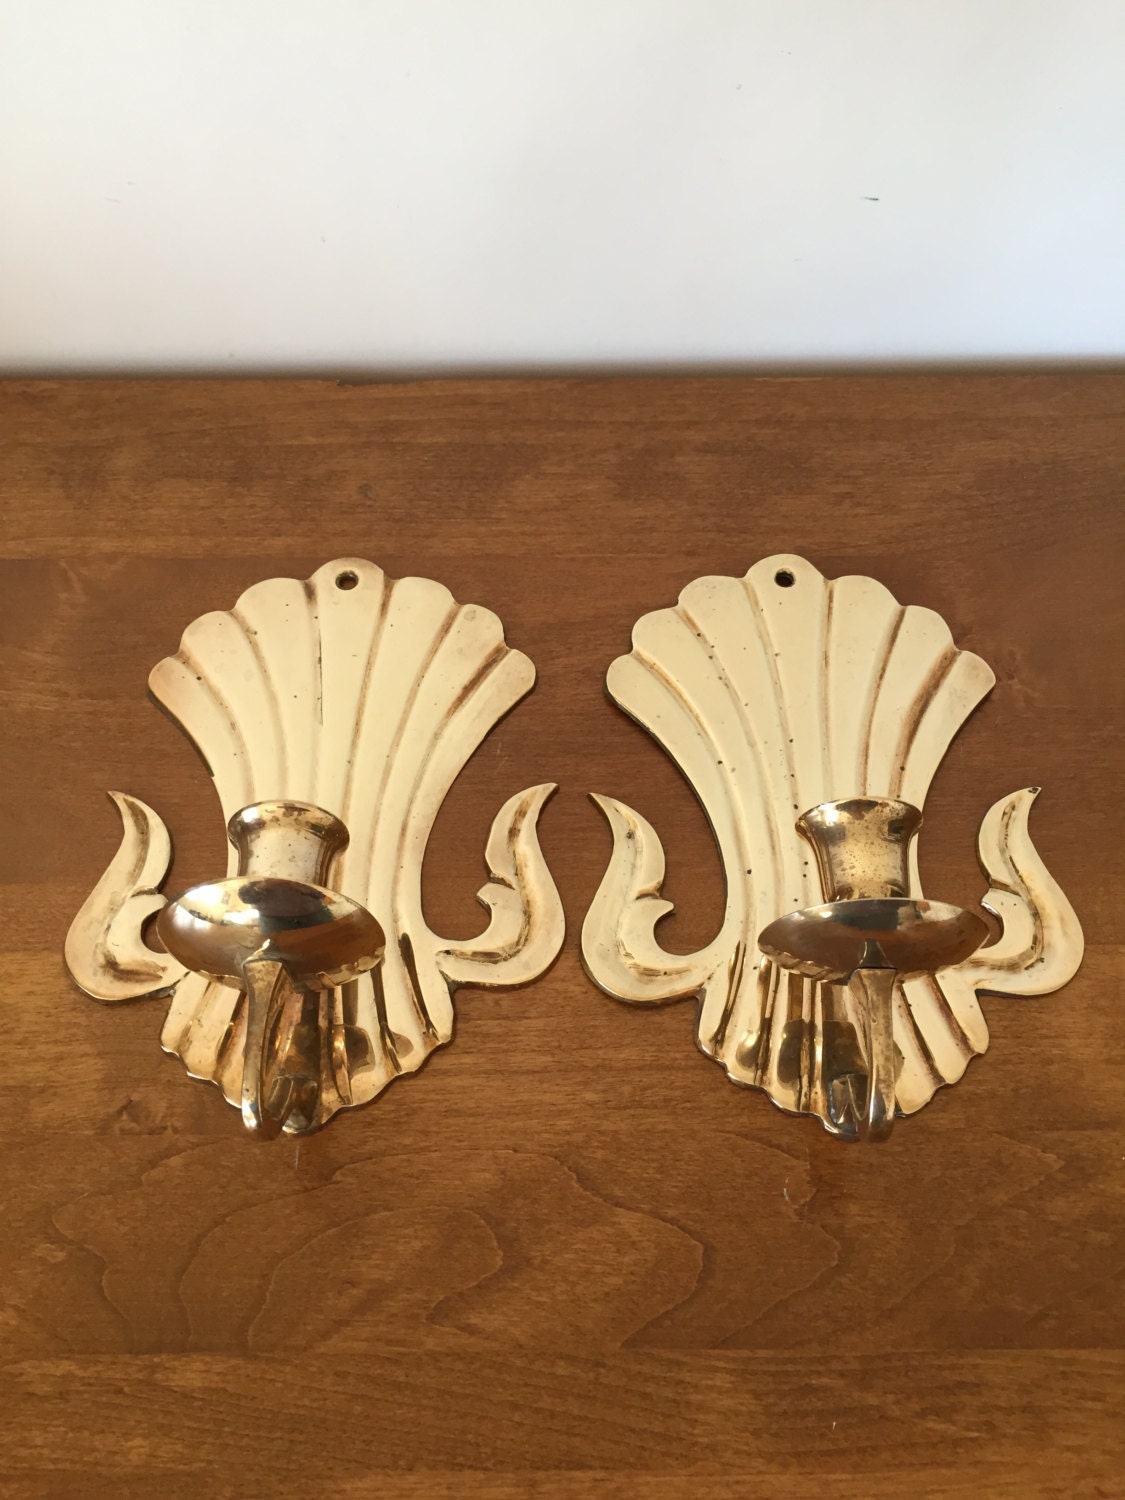 Pair of Solid Brass Wall Sconces Art Deco Brass Candle